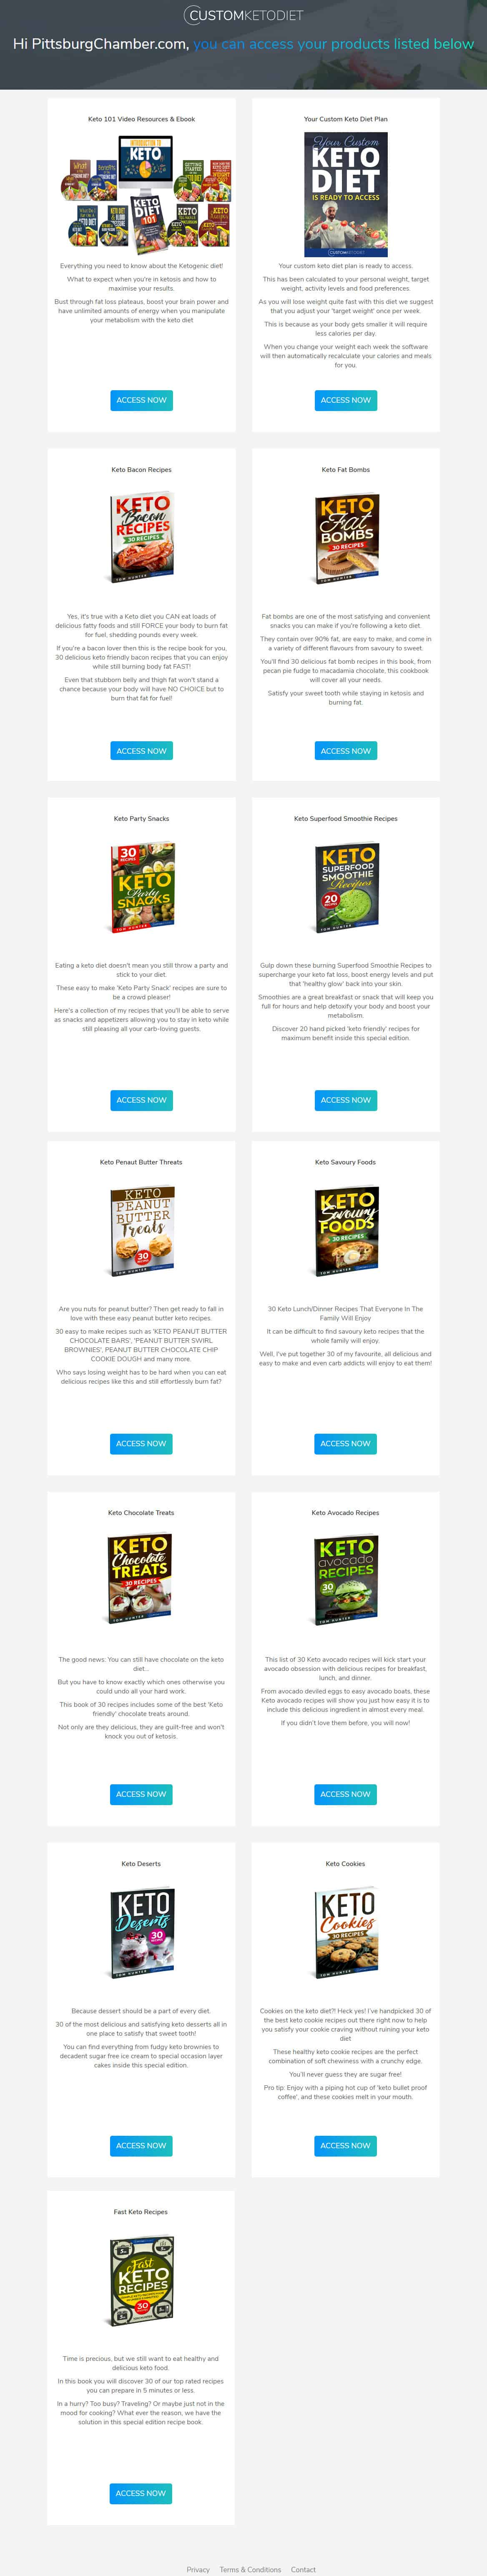 Plan  Custom Keto Diet Deals Under 500 2020